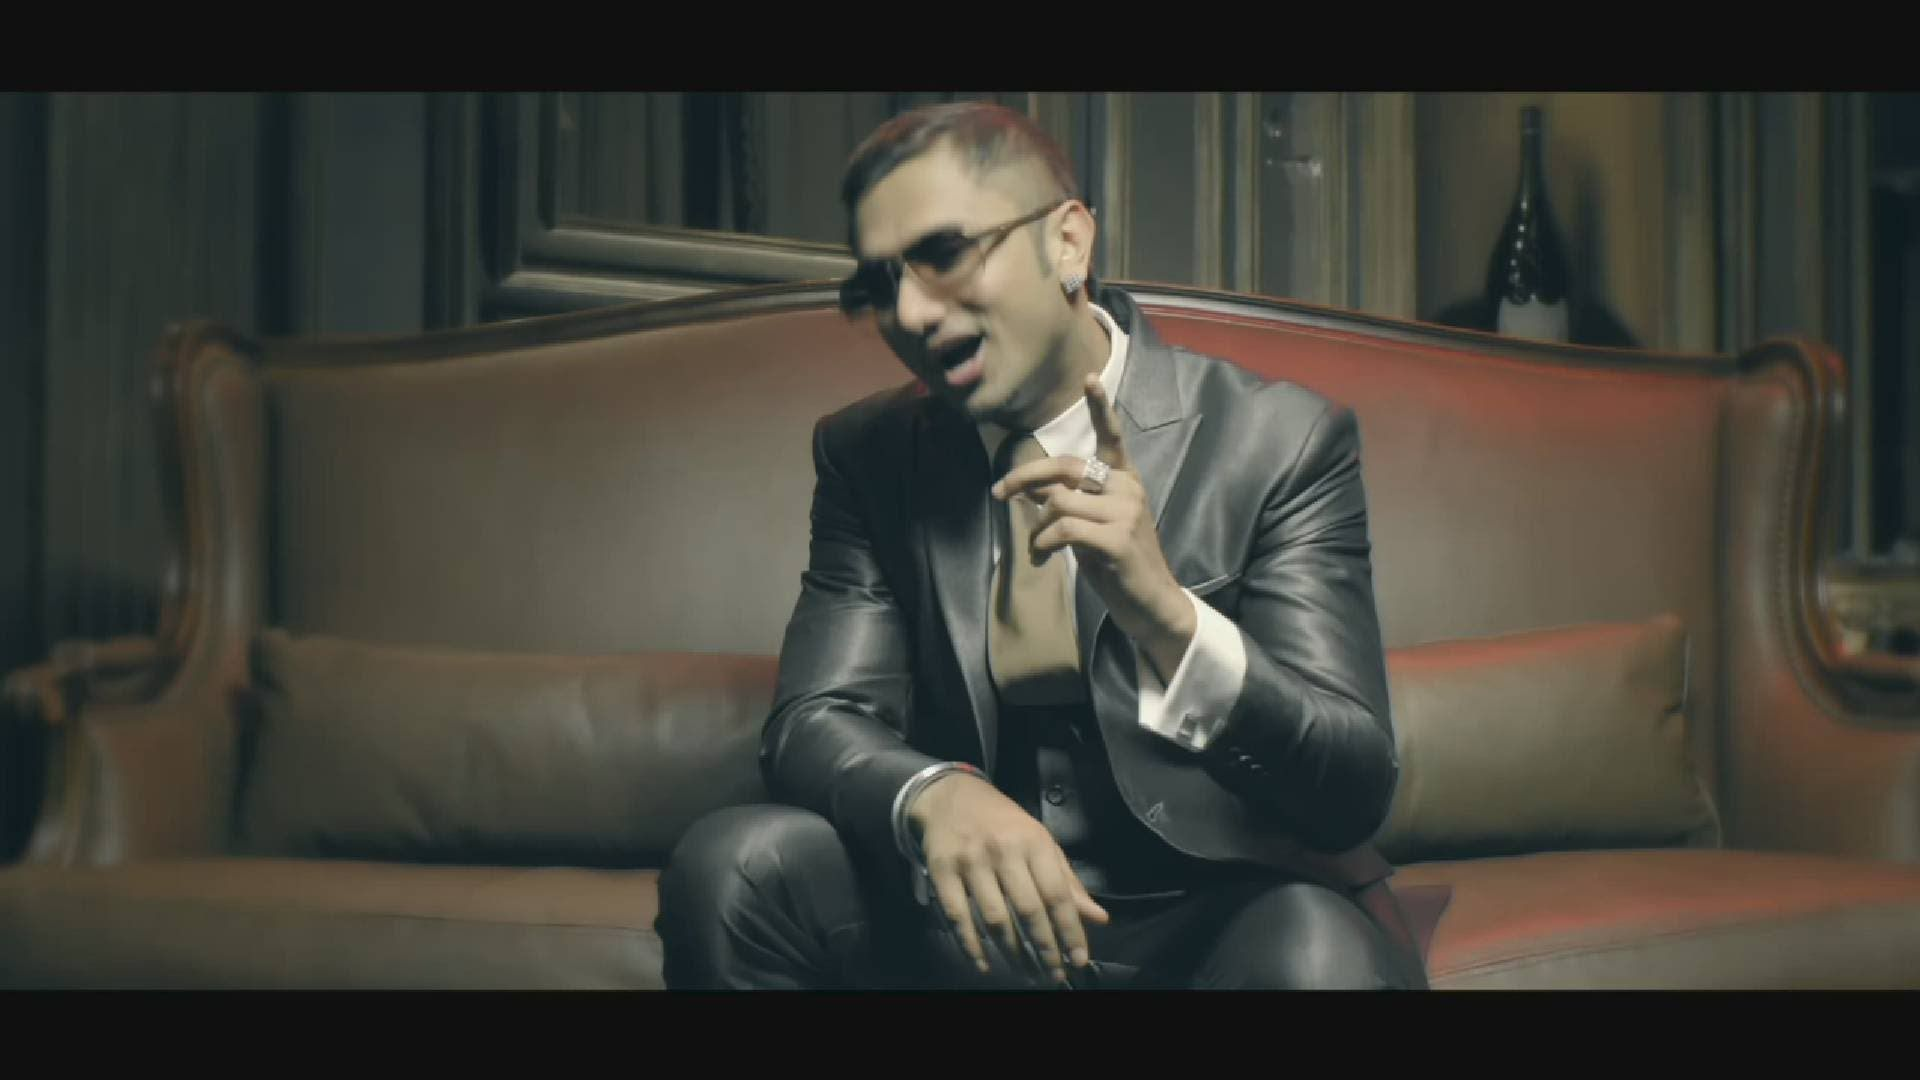 Bhagat singh soorme diljit ft yo yo honey singh mp3 song download.